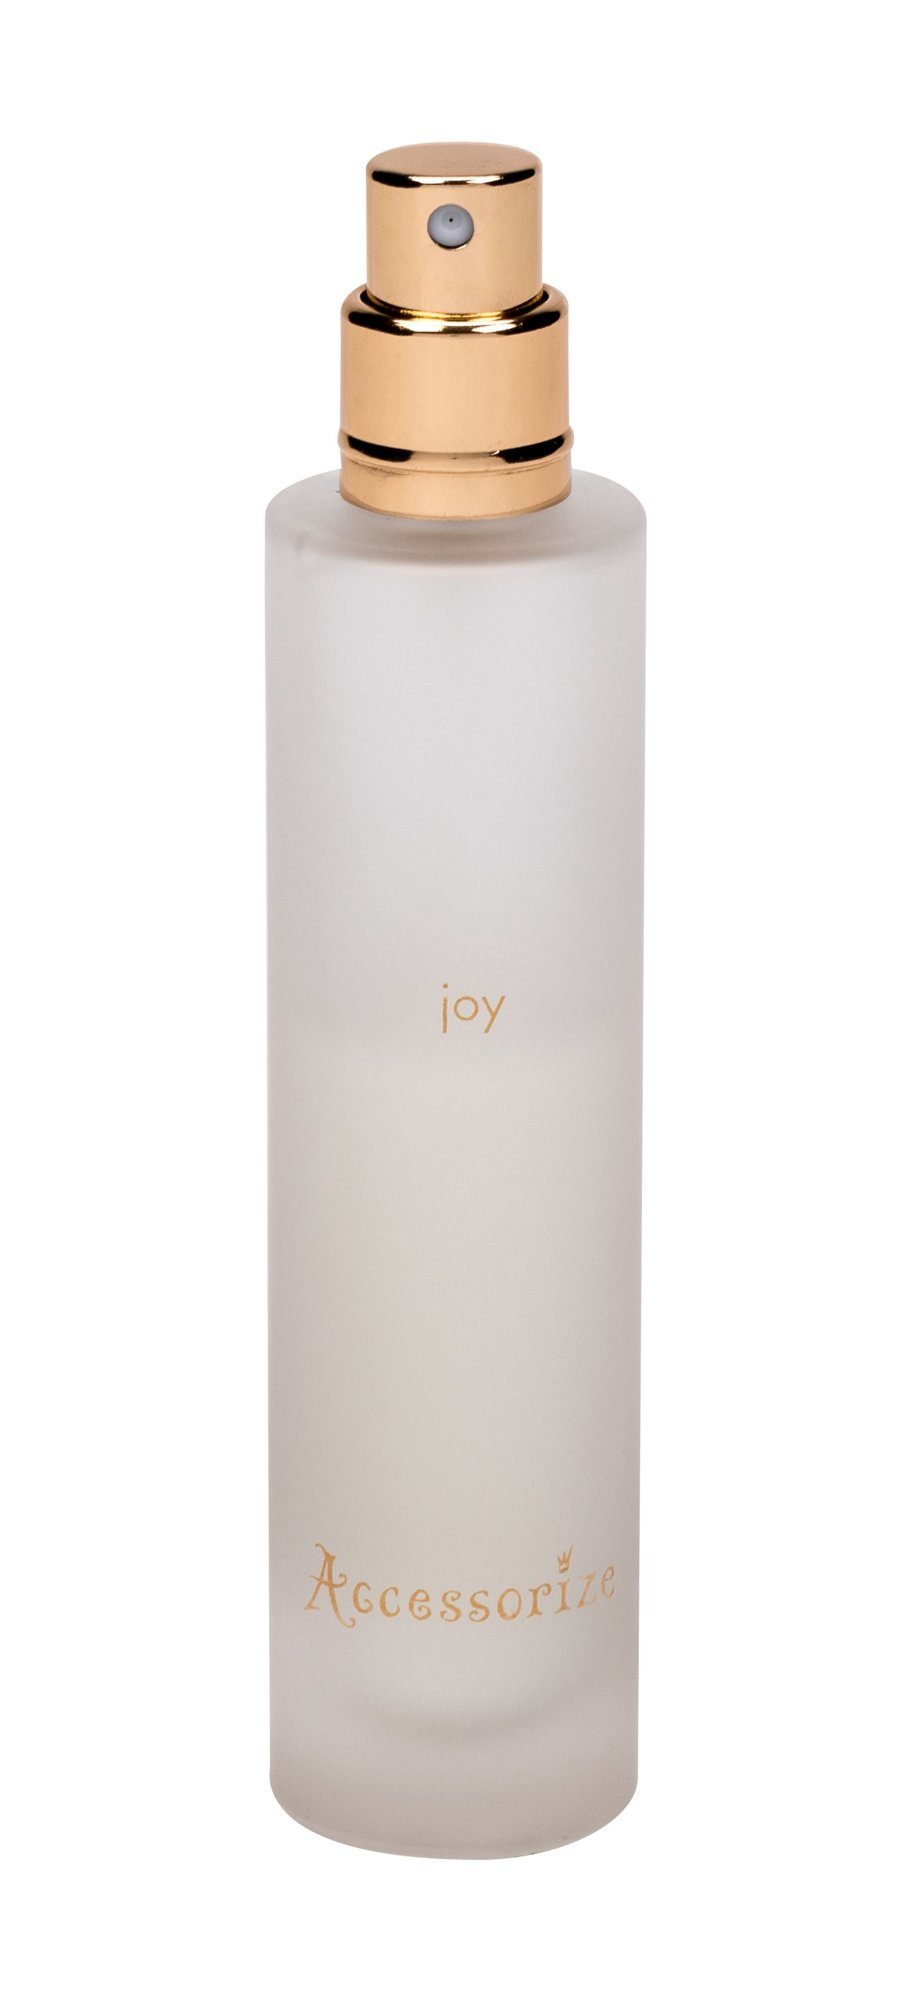 Accessorize Joy Eau de Toilette 30ml